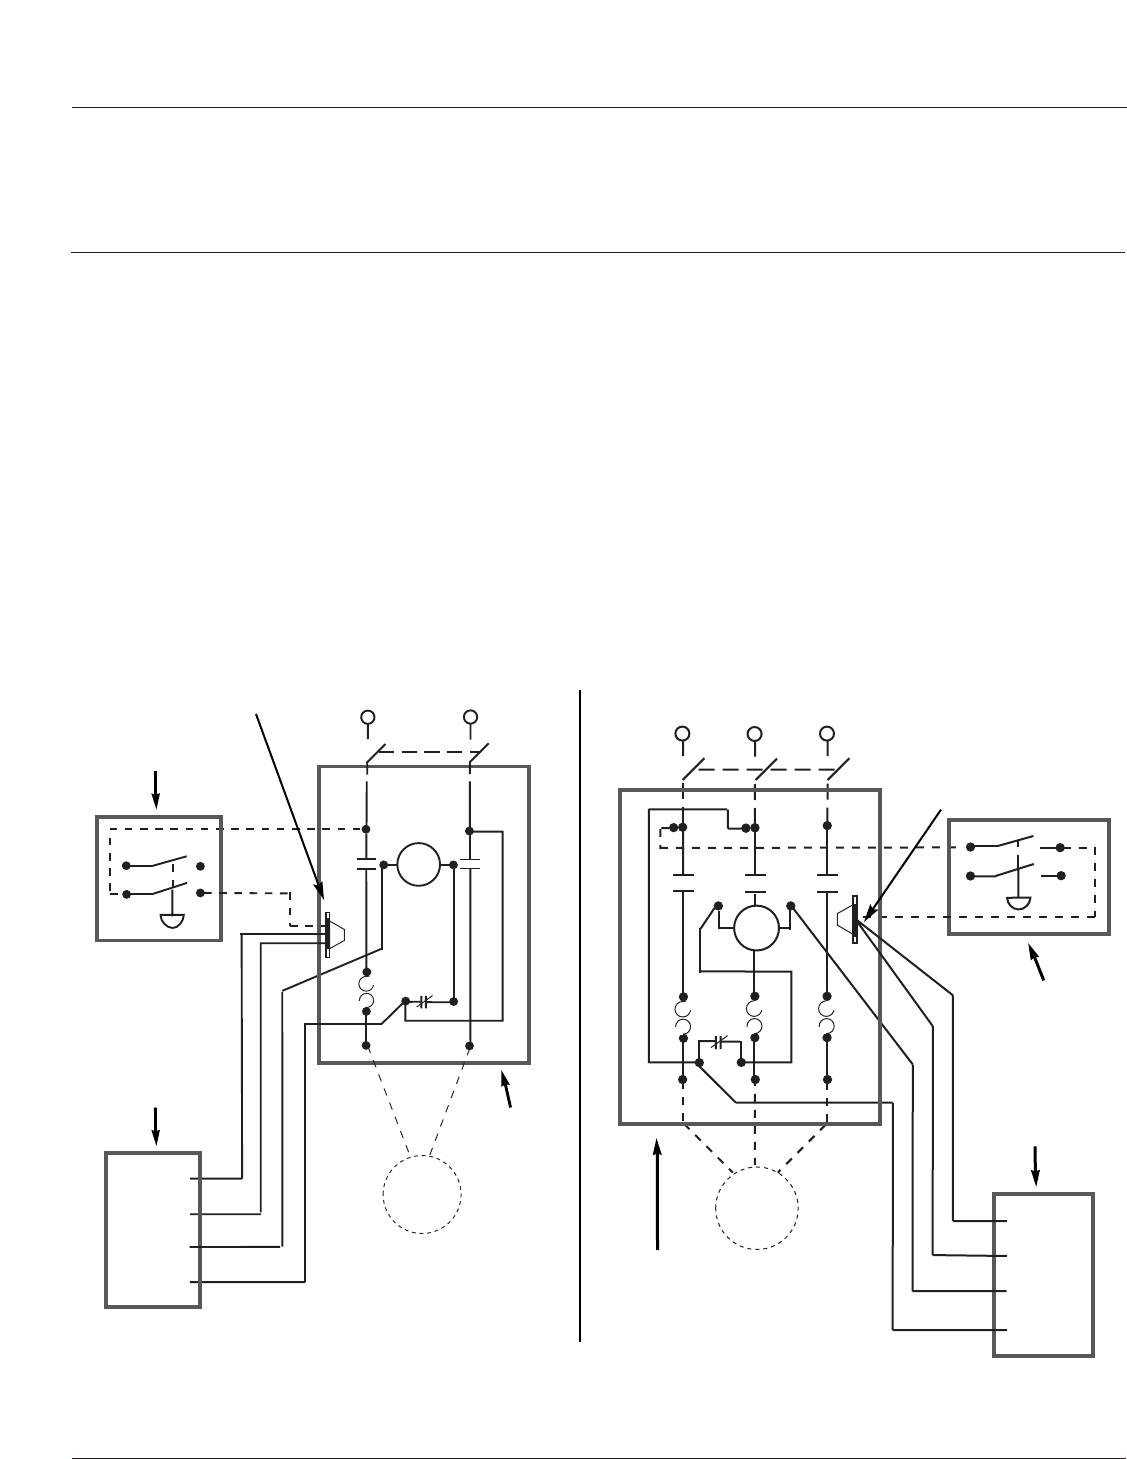 11b9278f 9704 4376 ab71 4fe84ff46a00 bg2 page 2 of campbell hausfeld air compressor tf0628 user guide campbell hausfeld air compressor wiring diagram at soozxer.org